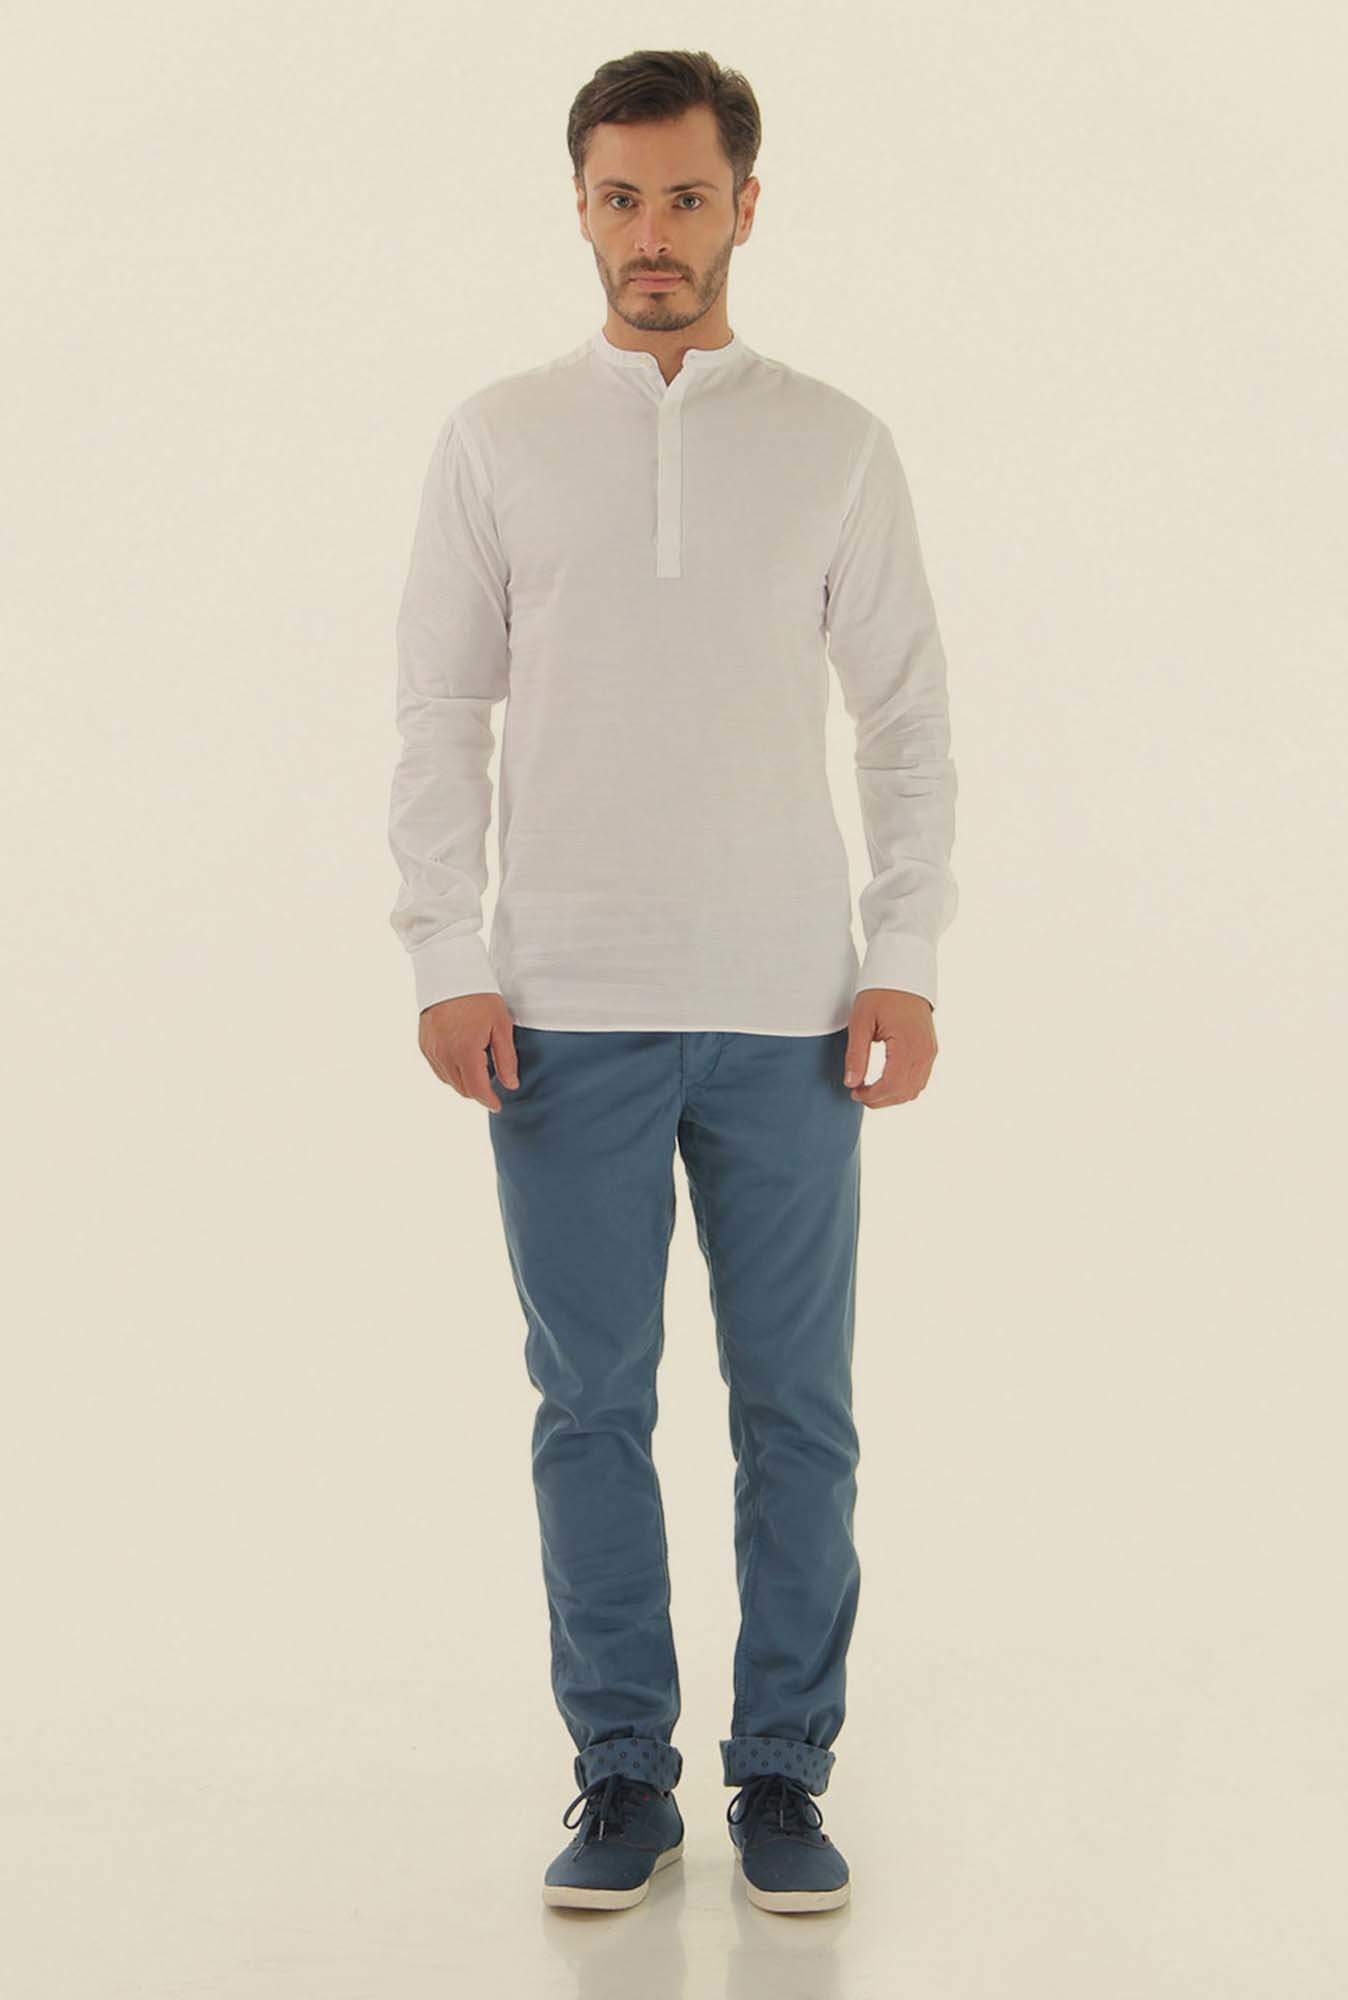 Jack & Jones White Slim Fit Casual Shirt